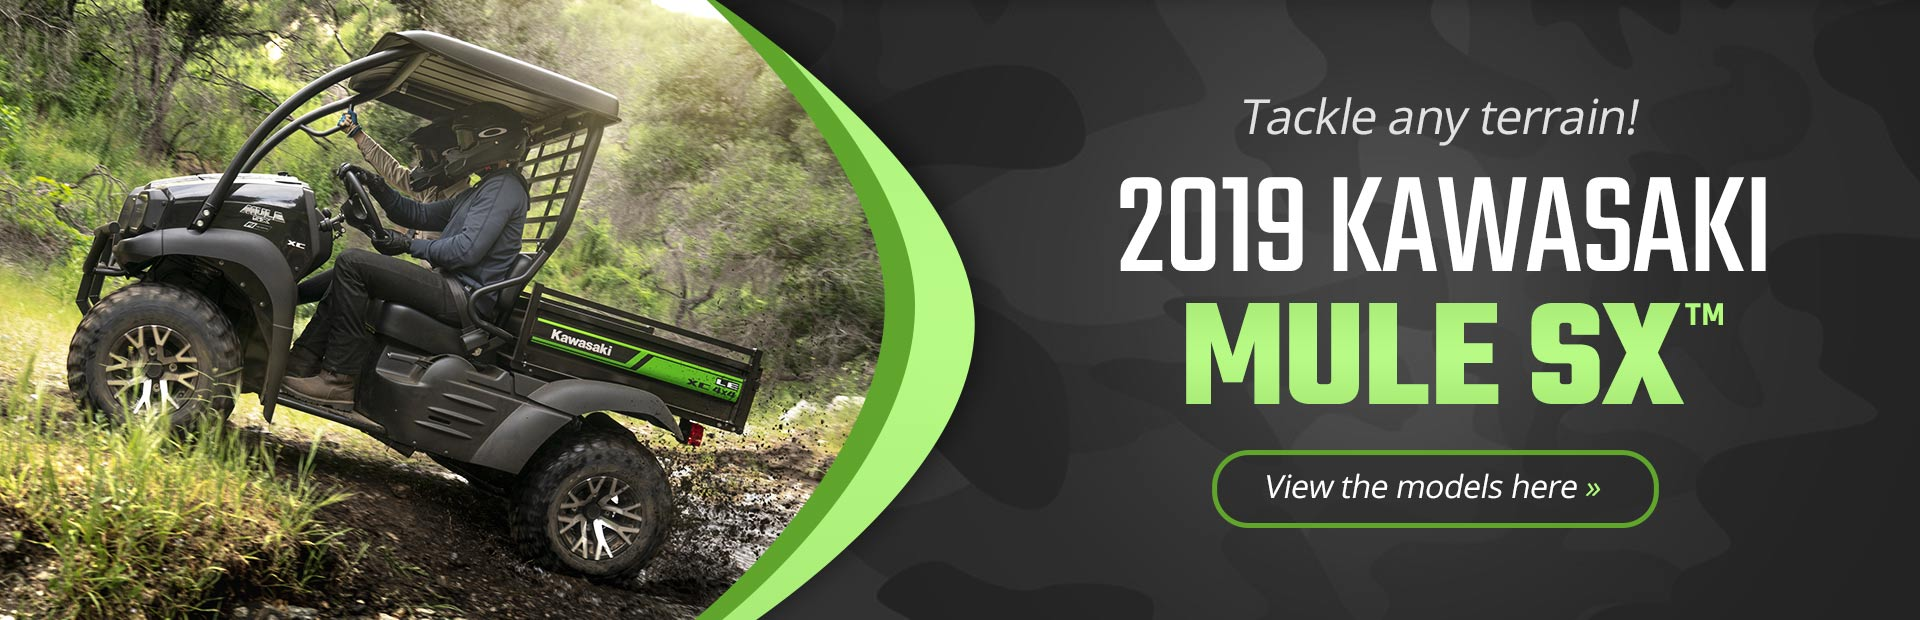 2019 Kawasaki MULE SX™: Click here to view the models.